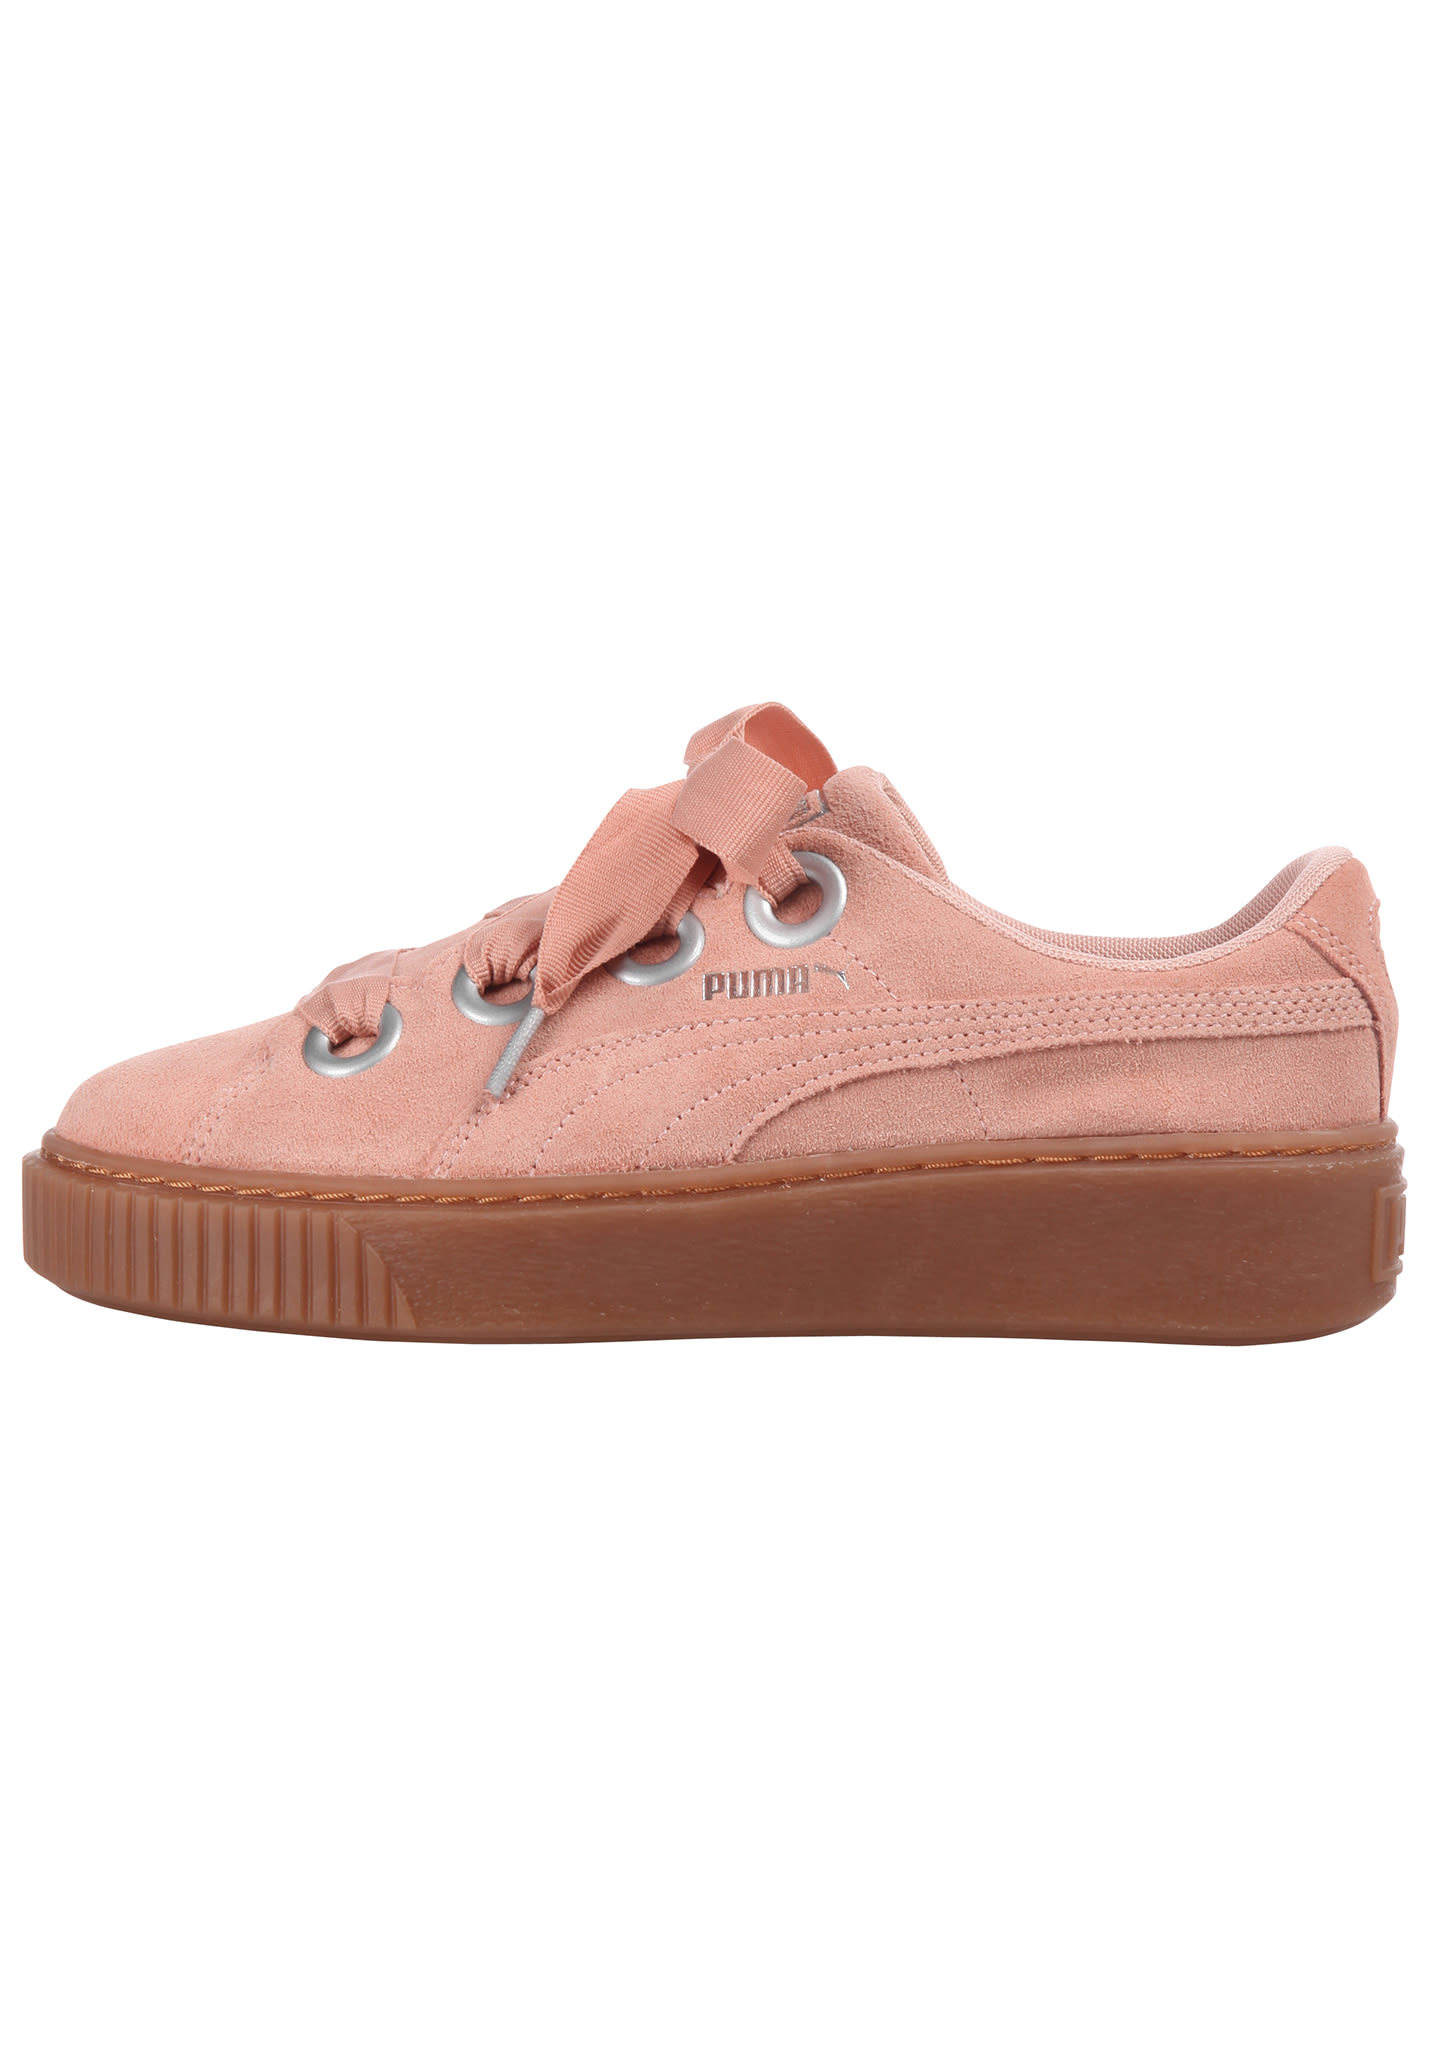 Pink For Puma Women Platform Suede Kiss Sneakers FKJ1lc